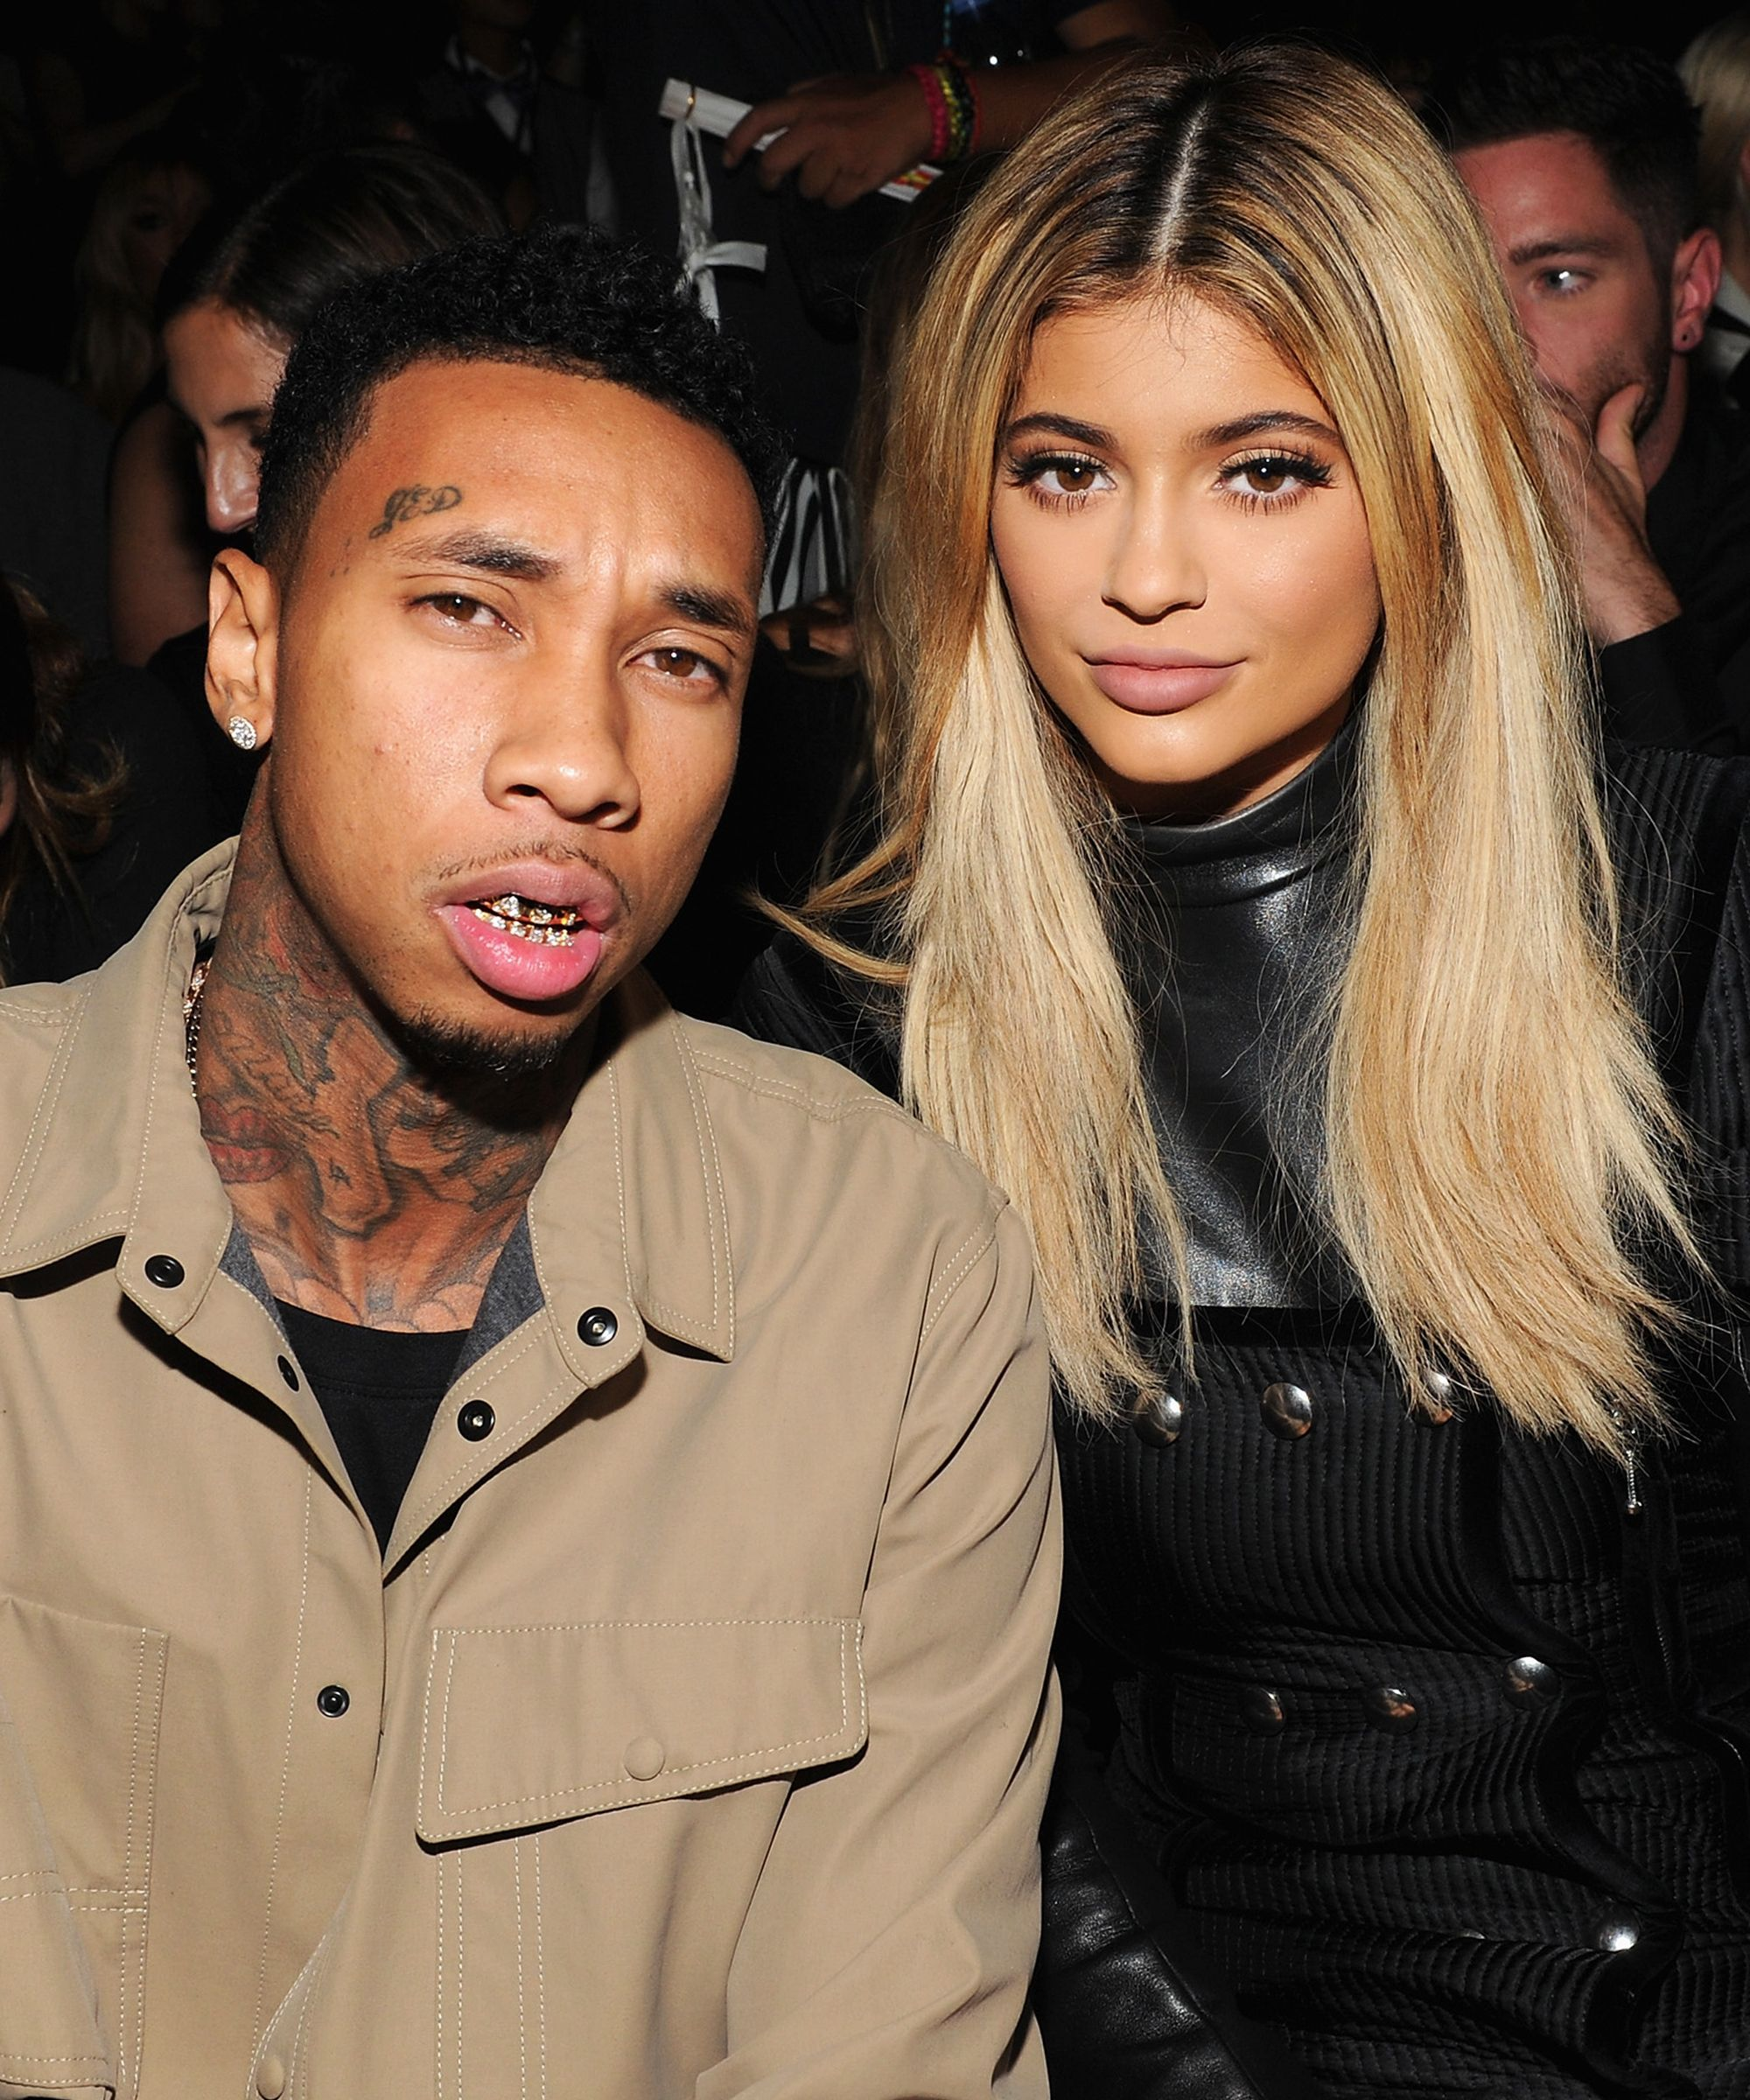 Tyga Speaks Out About His Ex Girlfriend Kylie Jenner Her New Life With Travis Scott Stormi Kylie Jenner Look Alike Tyga And Kylie Tyga